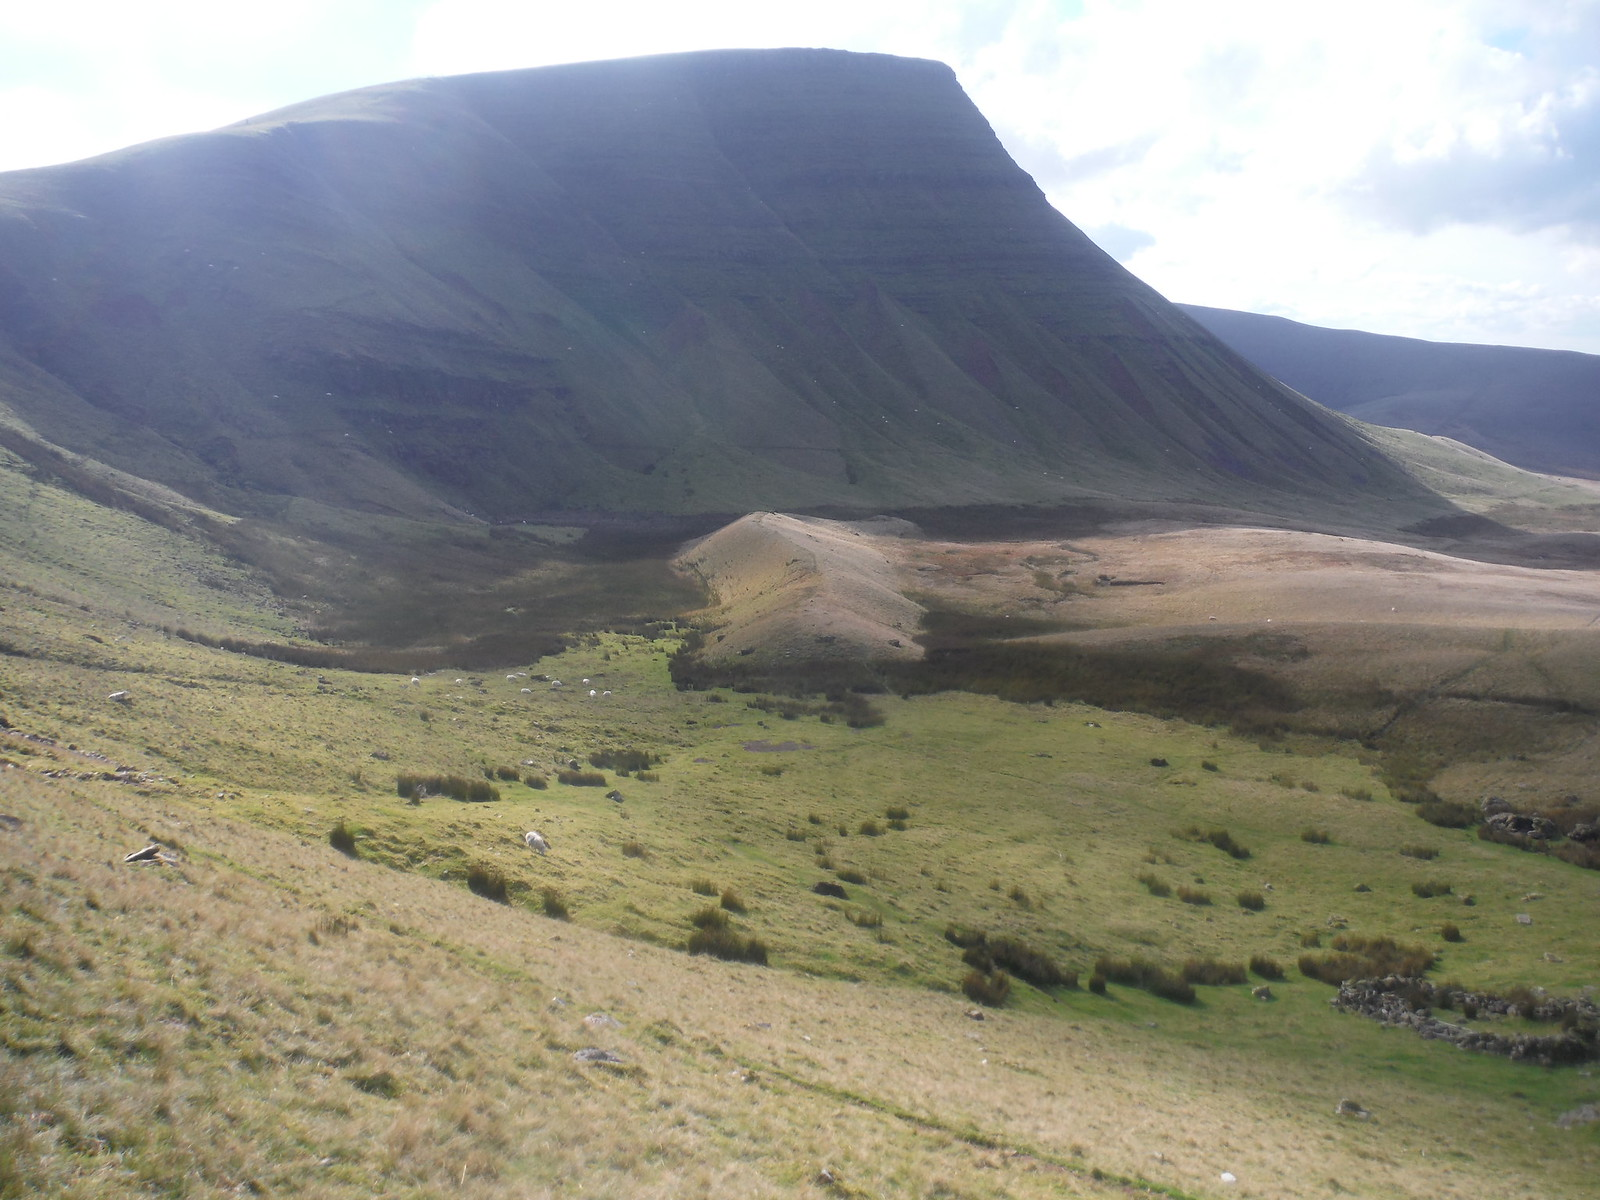 Picws Du and Glacial Moraine at the bottom of it SWC Walk 279 The Black Mountain - Y Mynydd Du (Glyntawe Circular)